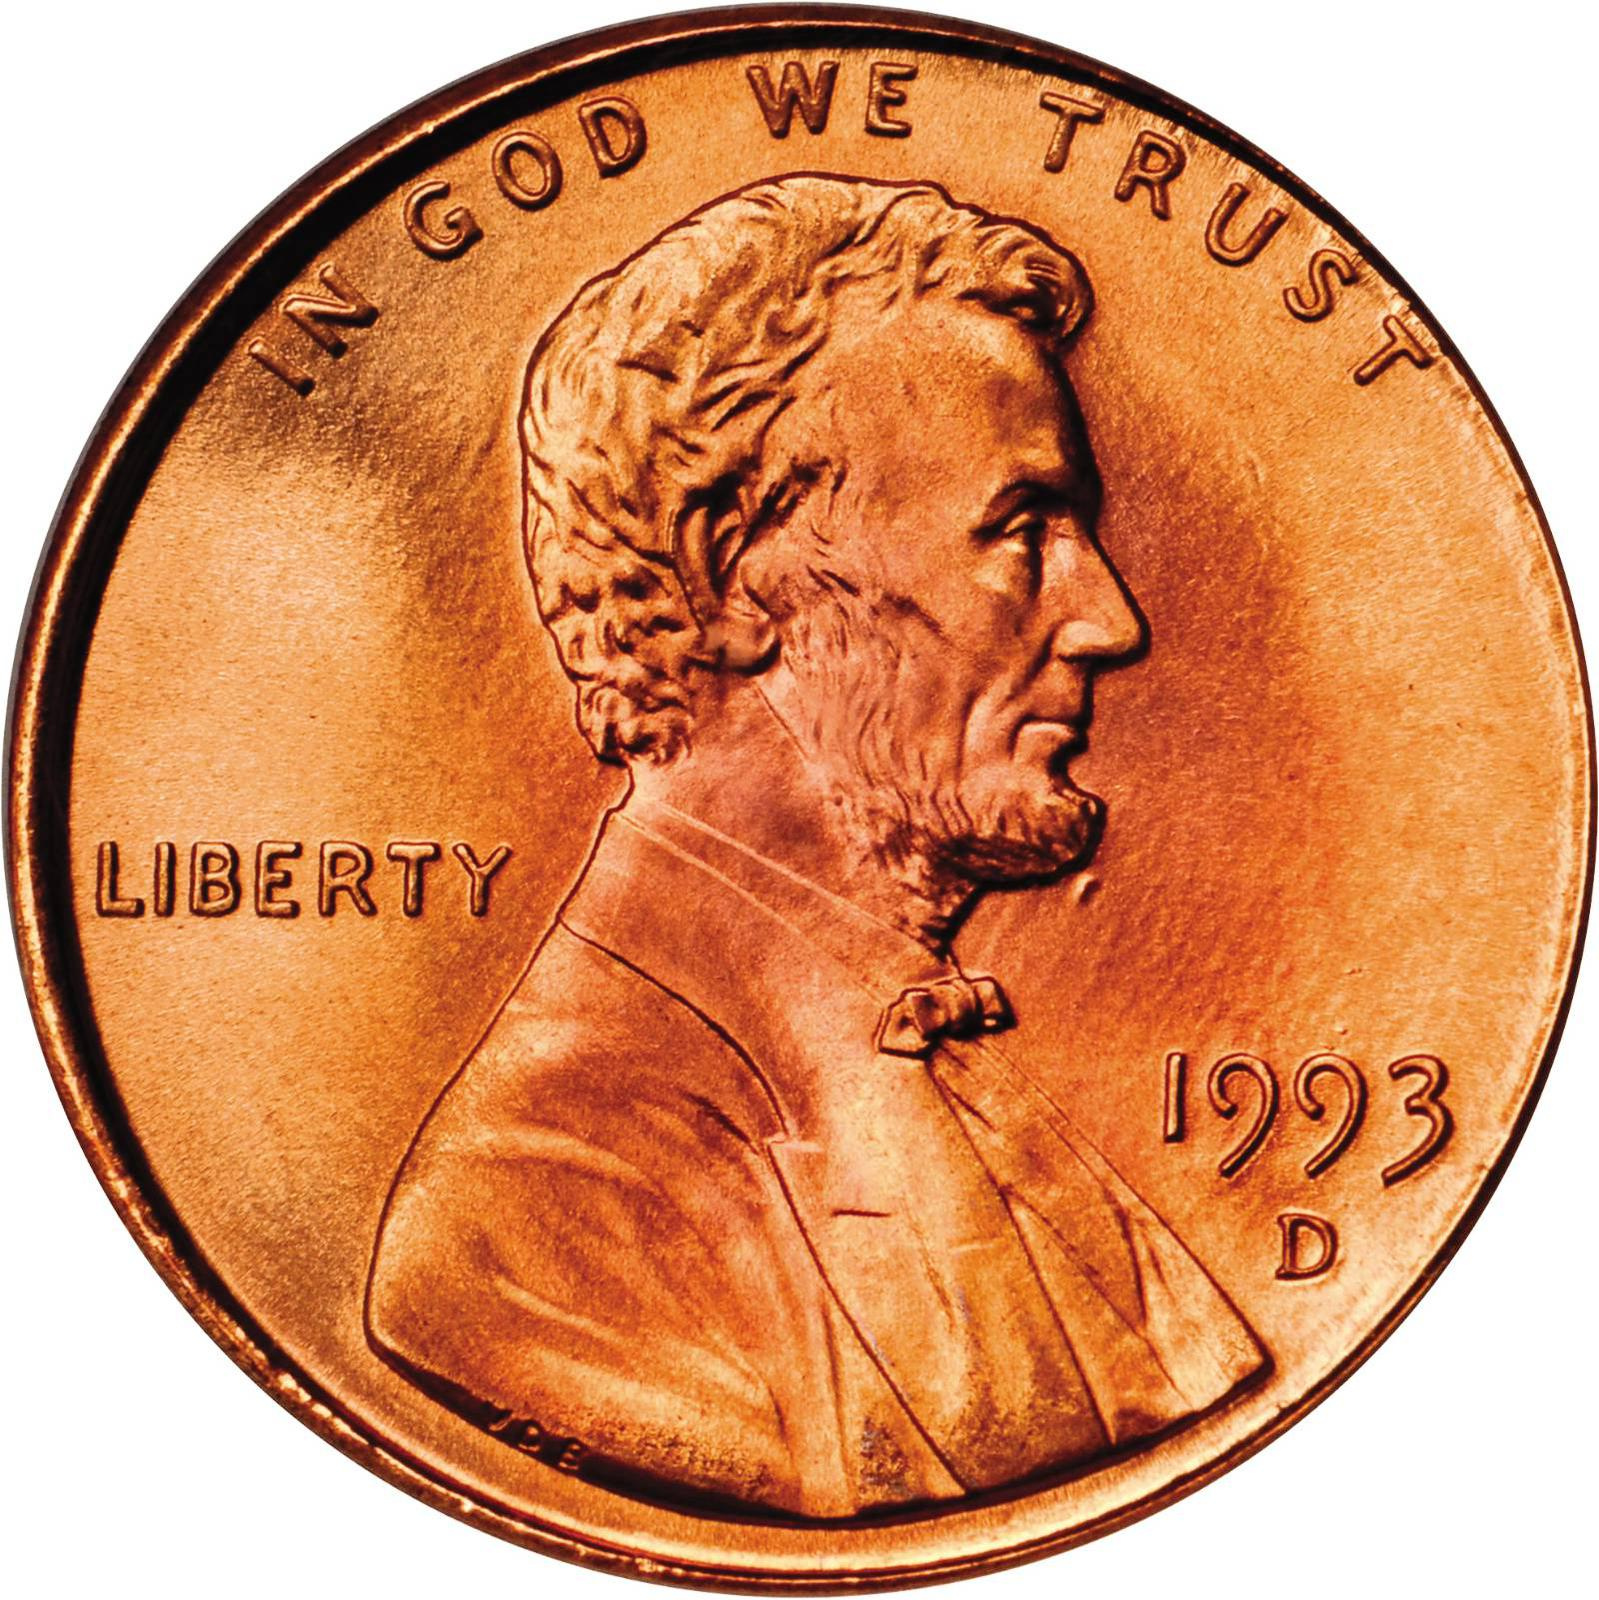 Value of 1993-D Lincoln Cents | We Appraise Modern Coins